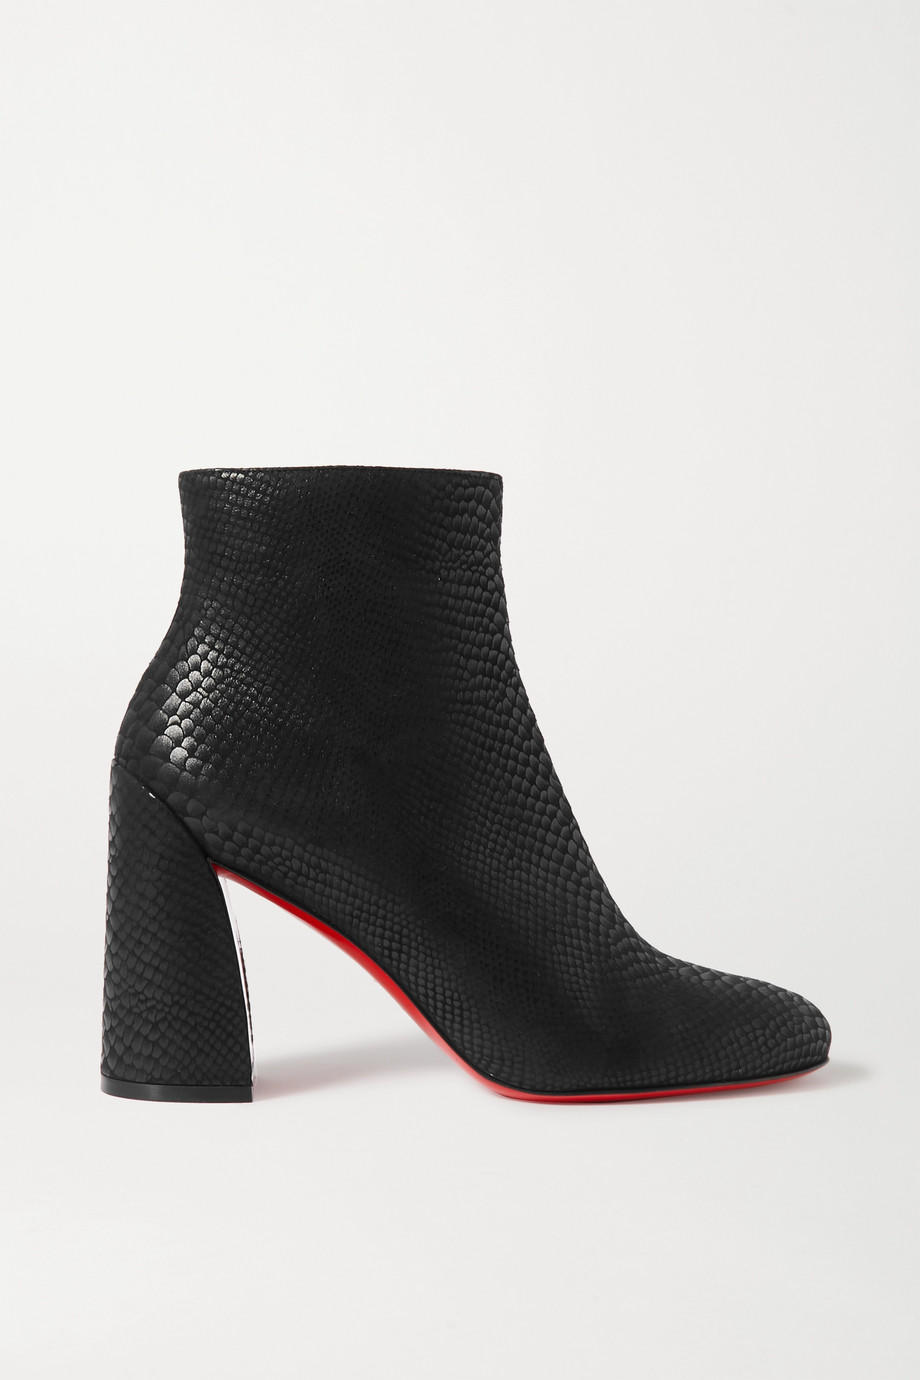 Christian Louboutin Turela 85 lizard-effect leather ankle boots